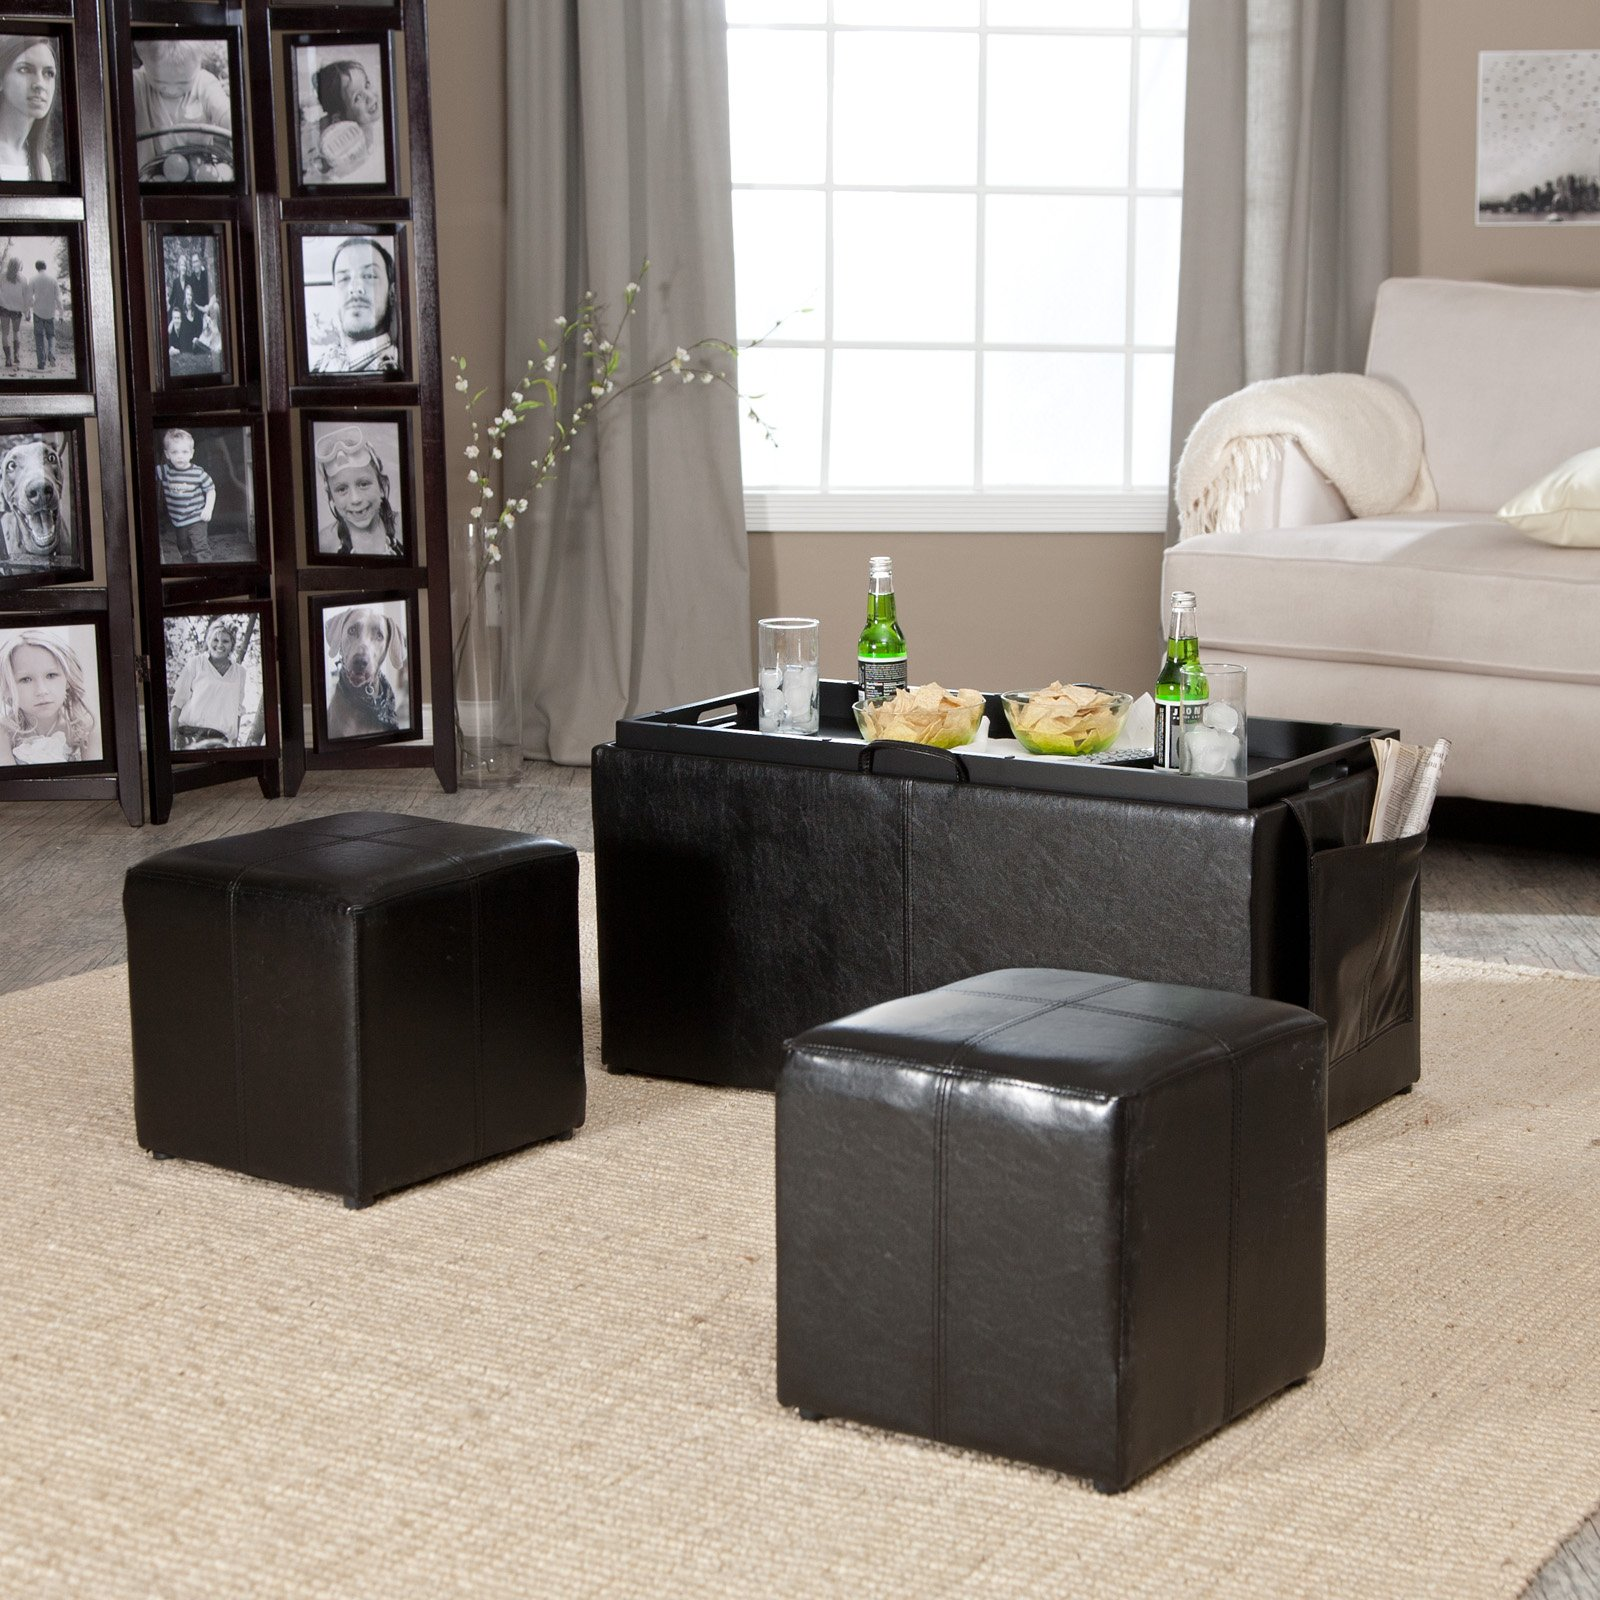 coffee table all tables child safe lazzoni that raises lift top melbourne bali avani drum accent round metal base kirklands small couch tennis rubber cherry end silver ice bucket